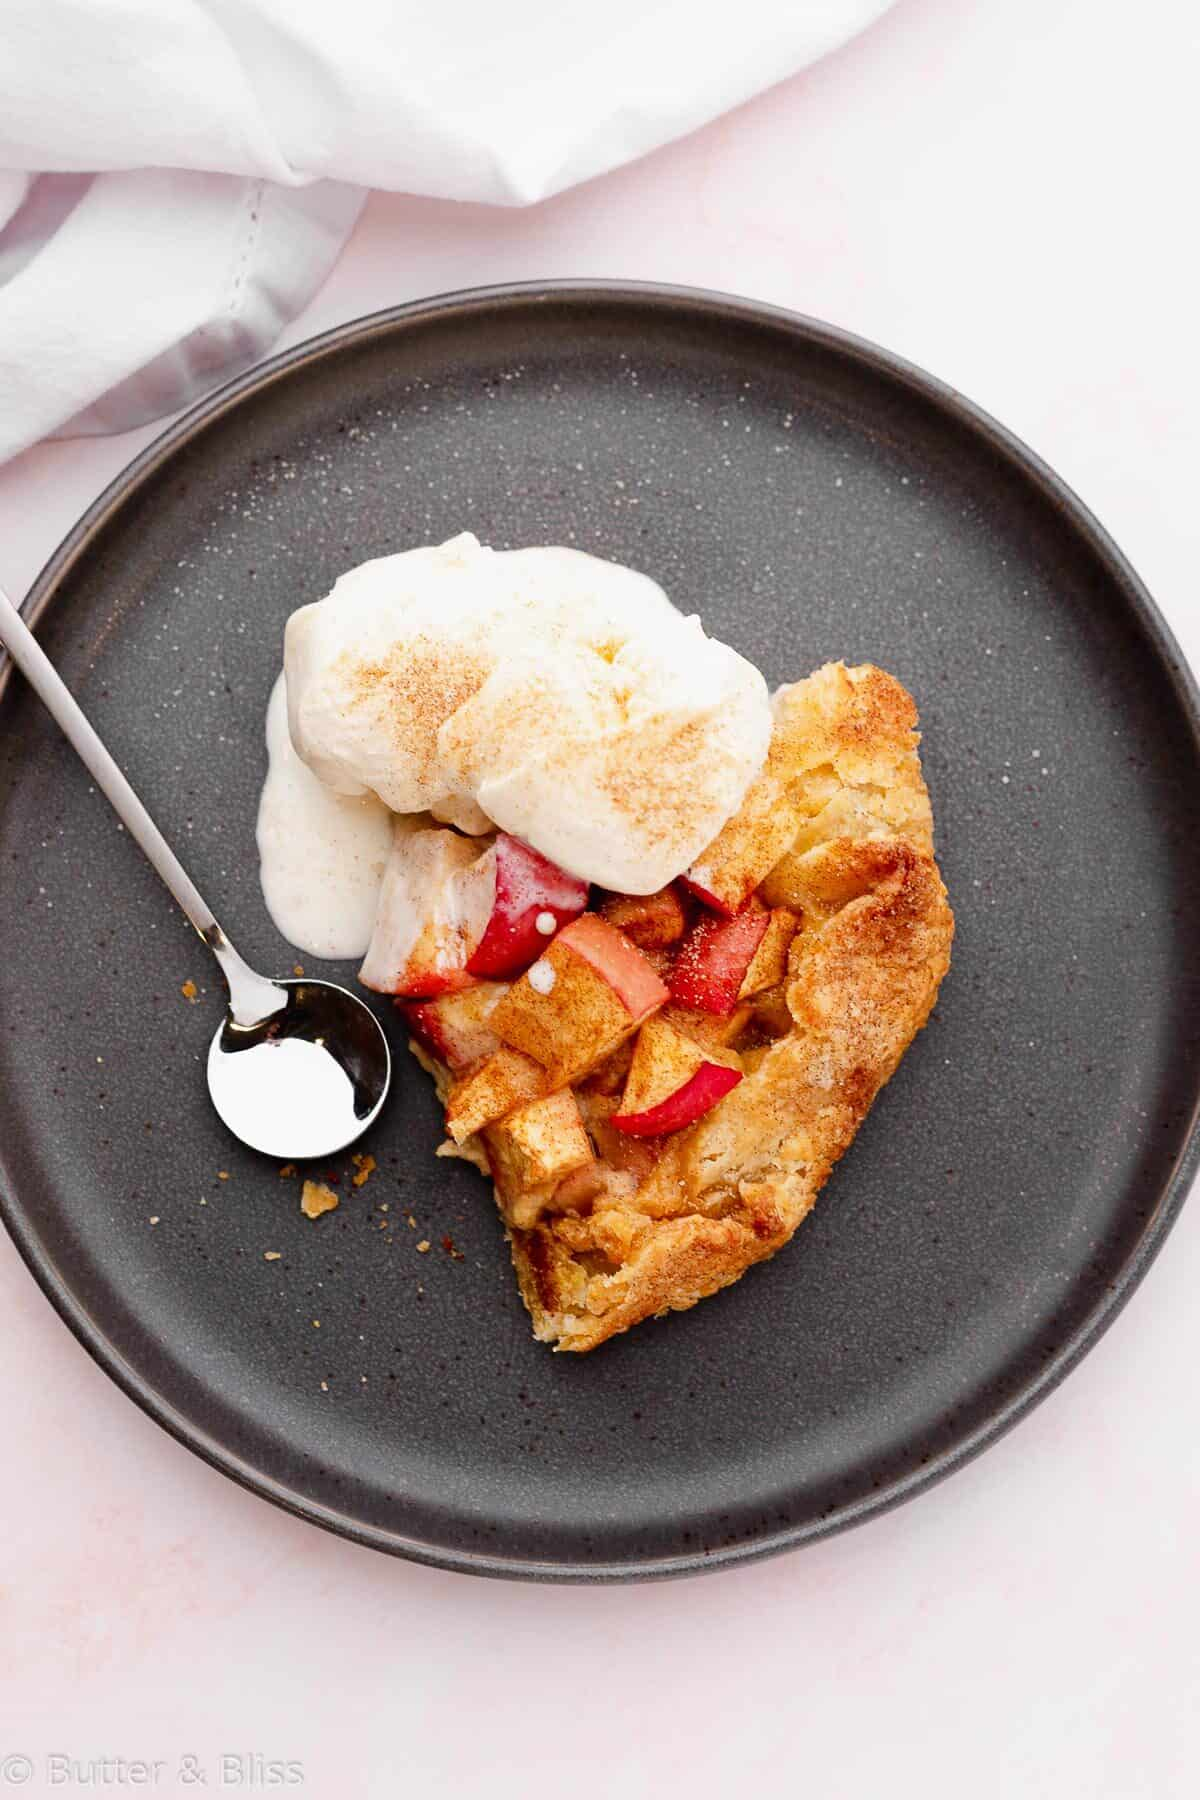 Slice of caramel corn apple galette on a plate with ice cream